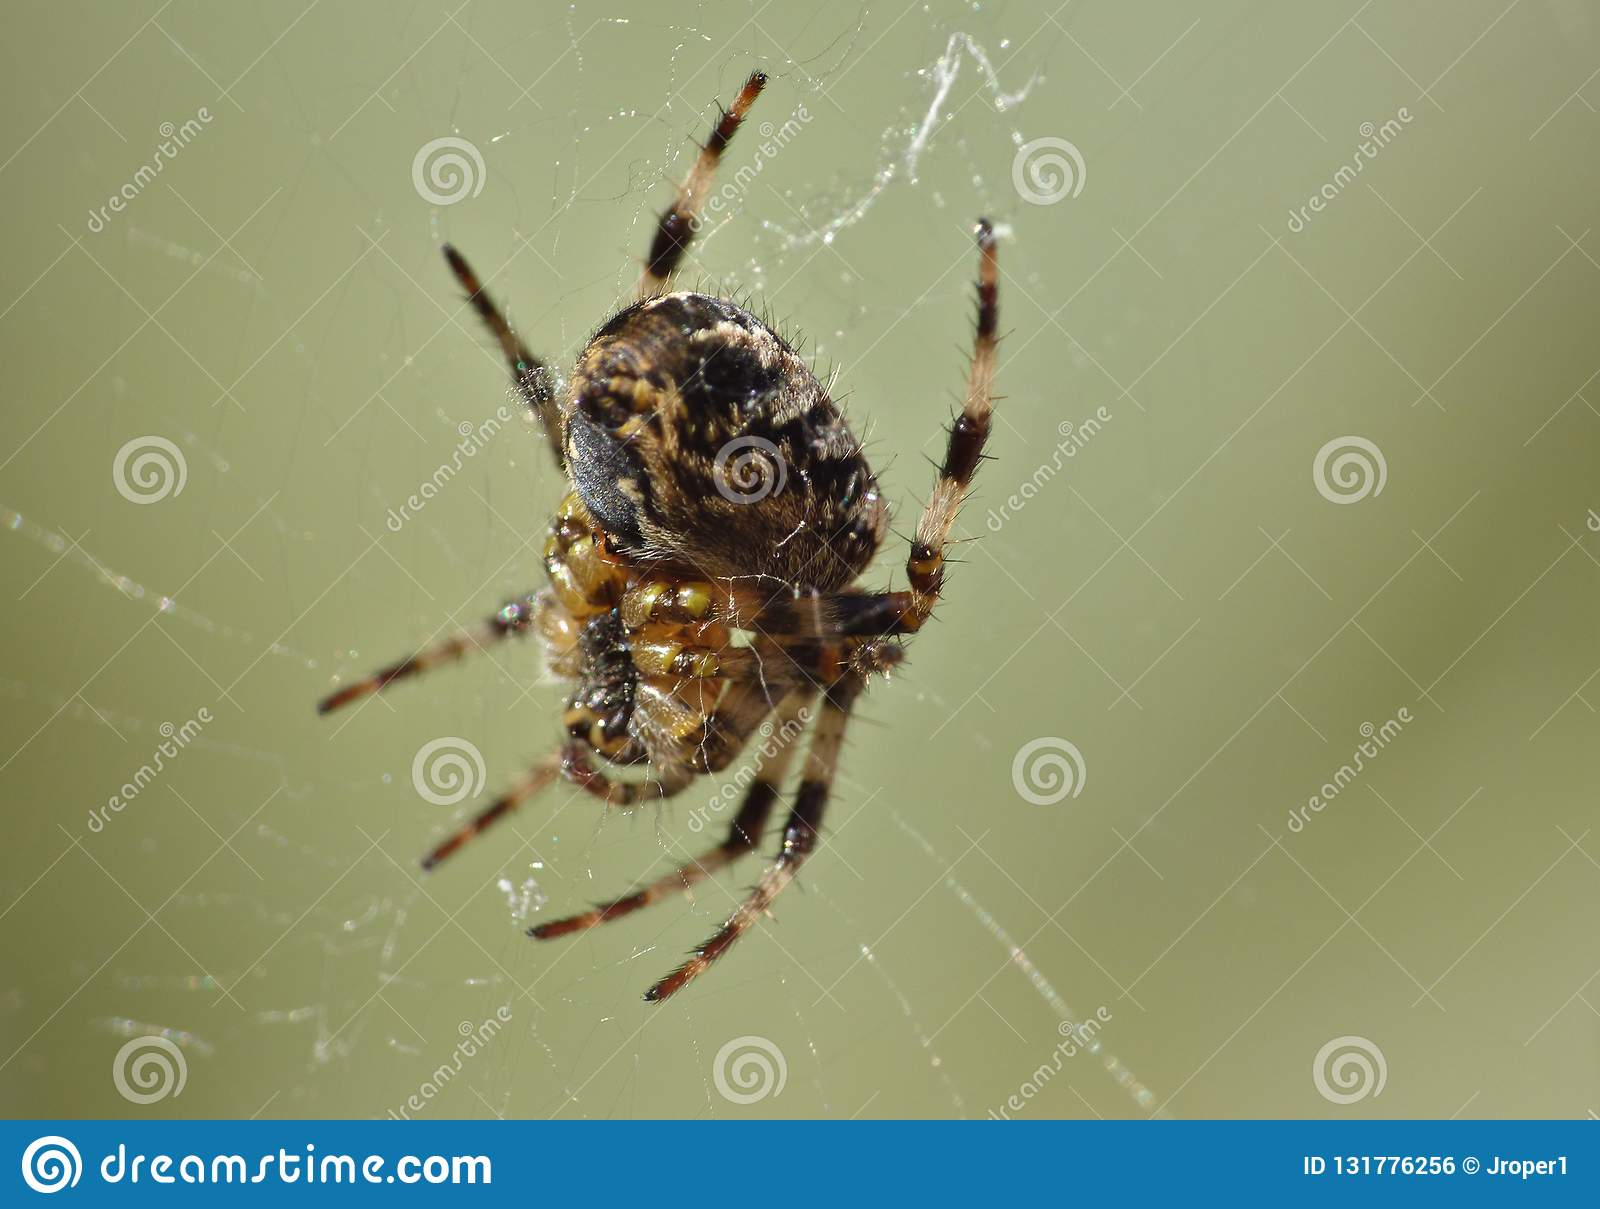 Macro close up of a spider int he garden, photo taken in the UK